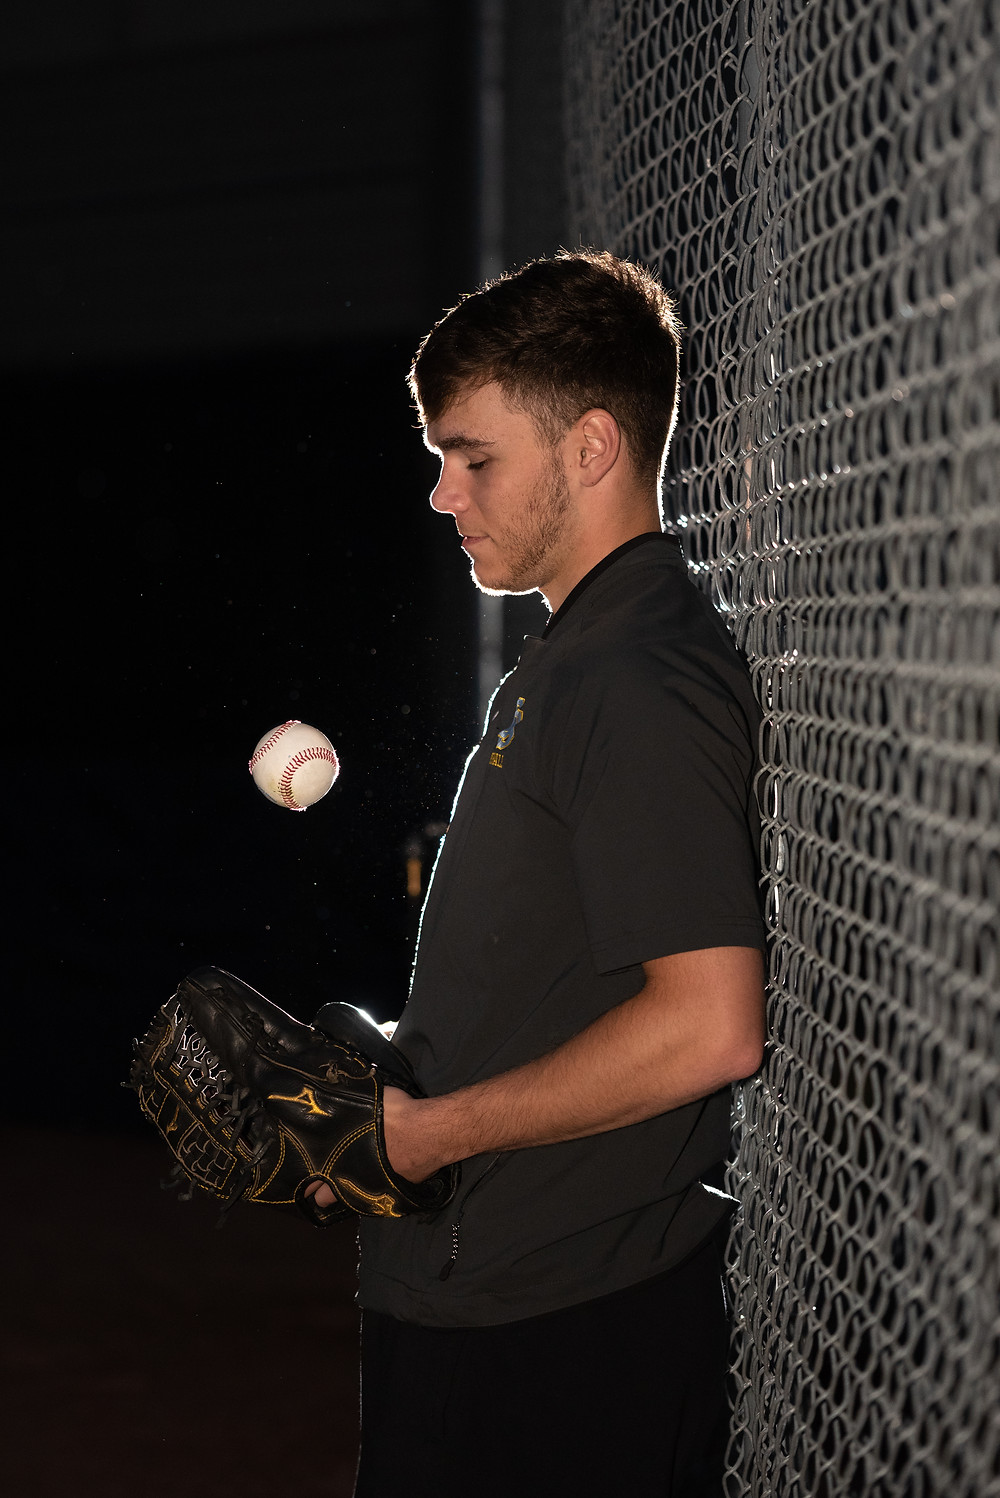 Senior guy tossing baseball at night leaning against a fence with a flash illuminating him